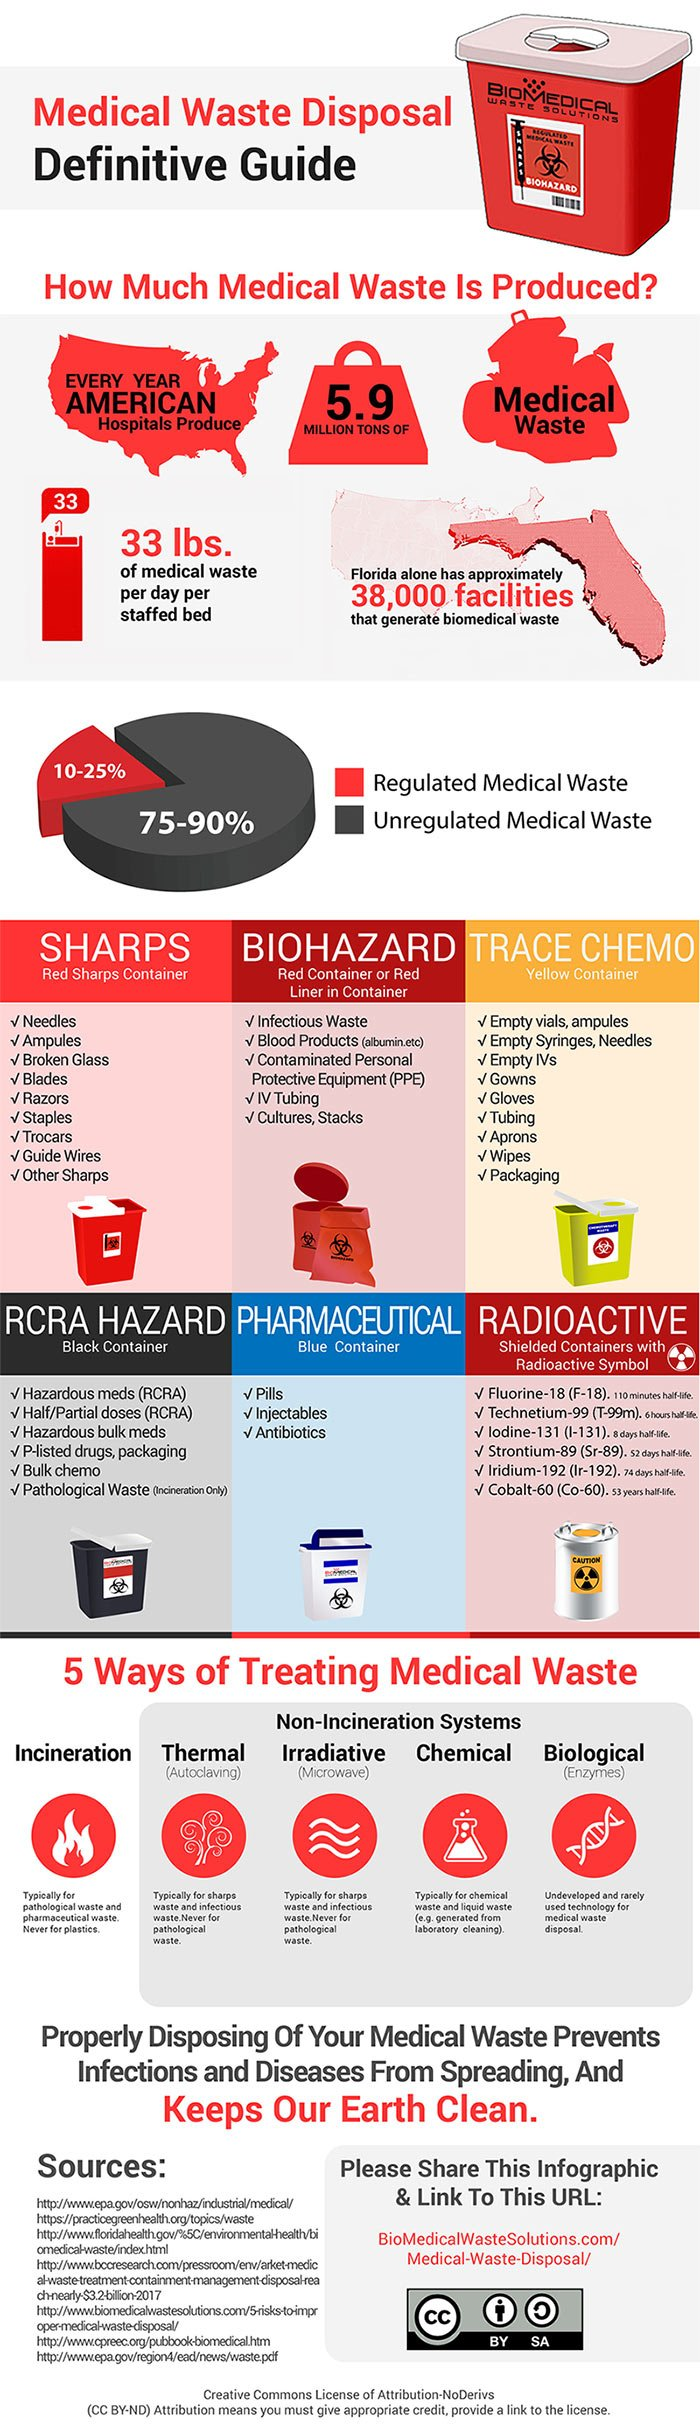 Sharps Disposal Definitive Guide Infographic